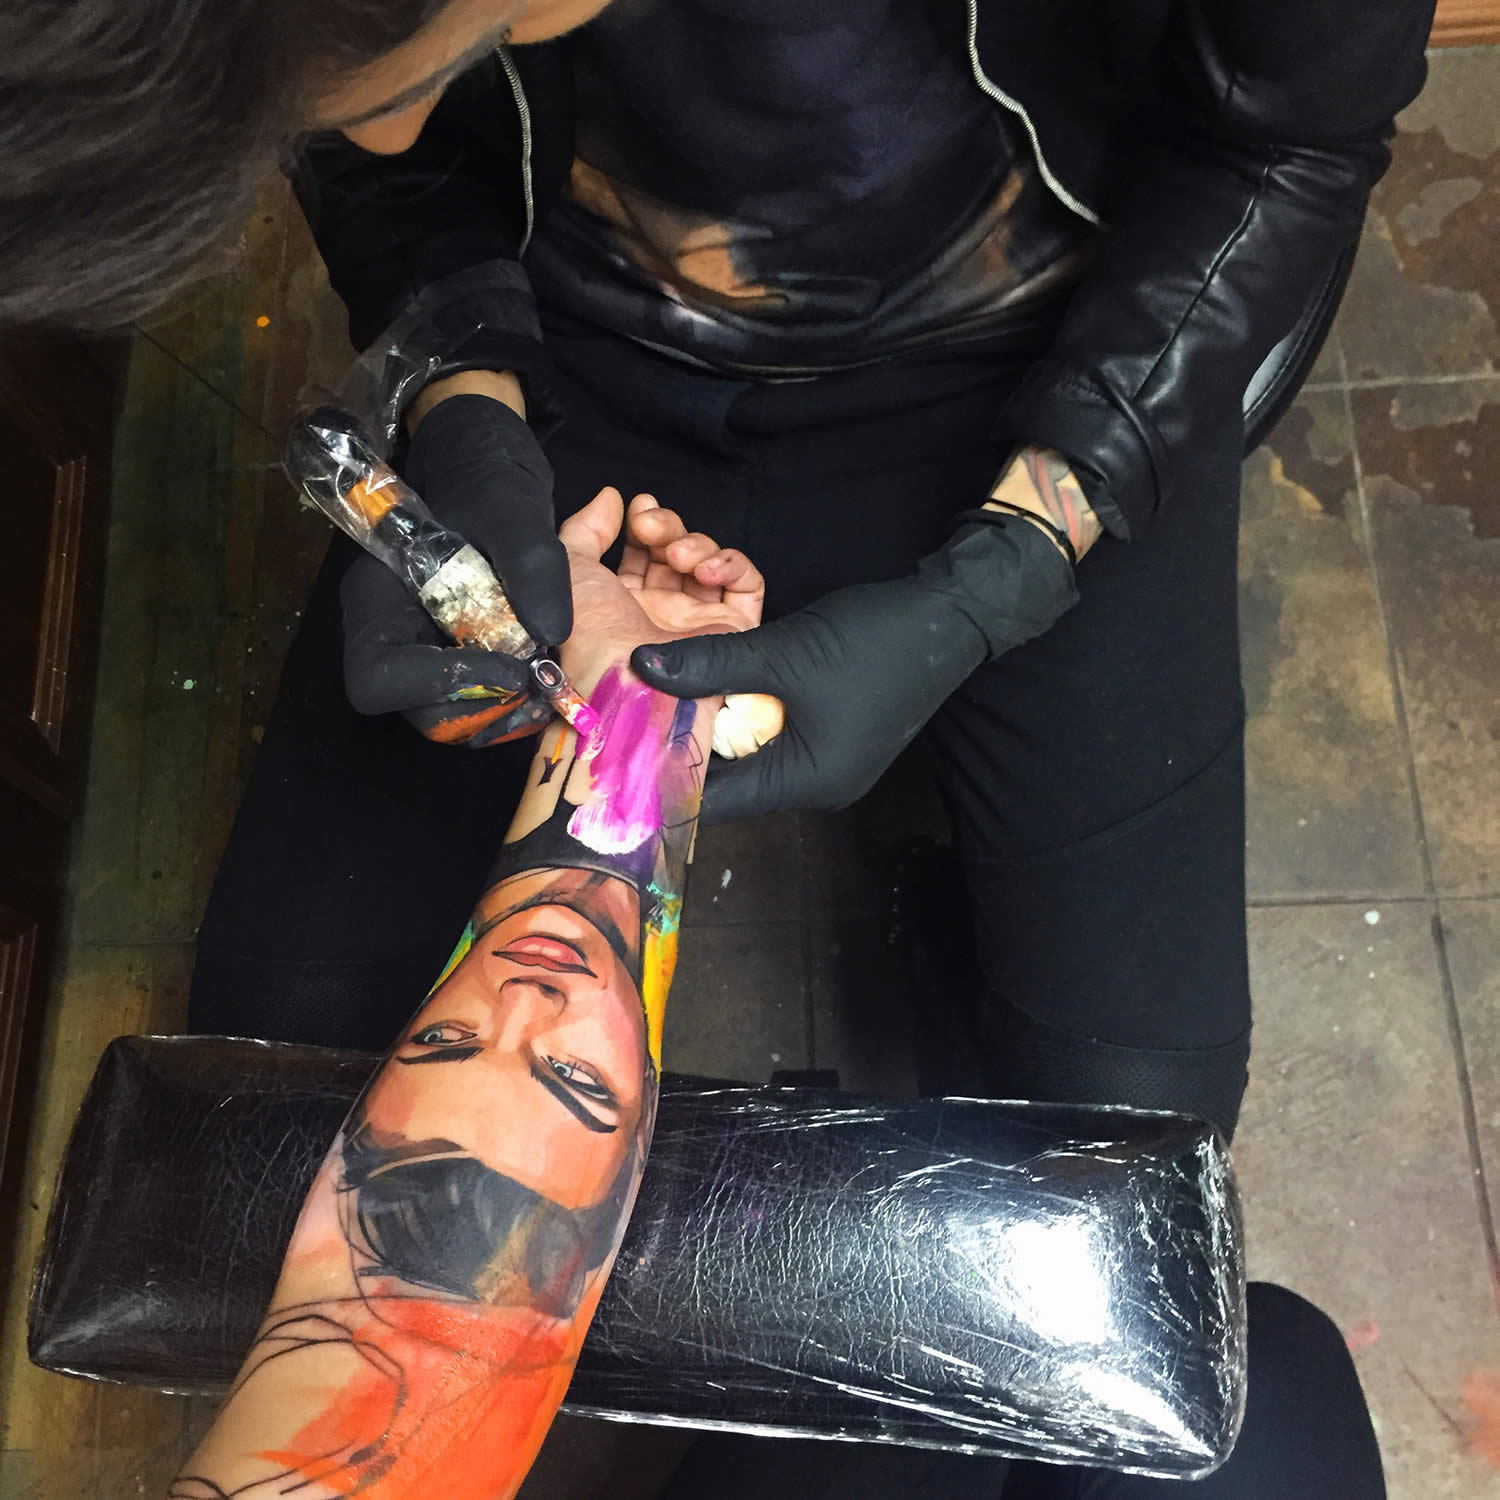 ivana tattooing a client's arm